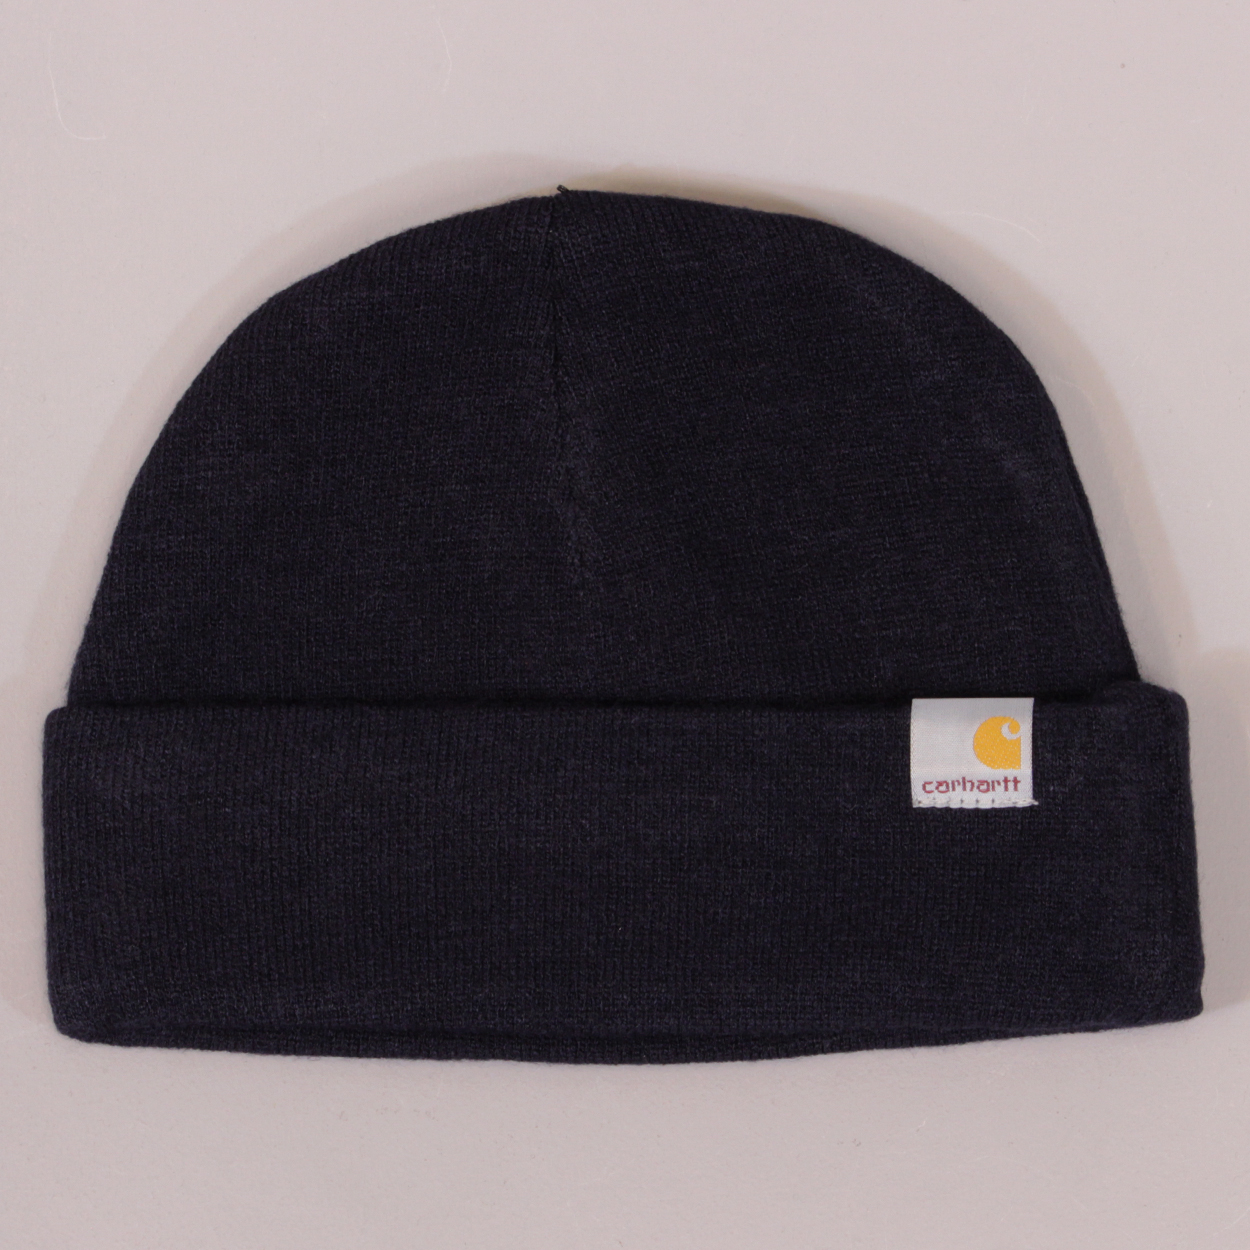 fab2382d9d1 Carhartt Marine beanie in navy blue for those brisky nights on the docks  with the boys. Don t know why you d be there unless it was your job. up to  no good ...